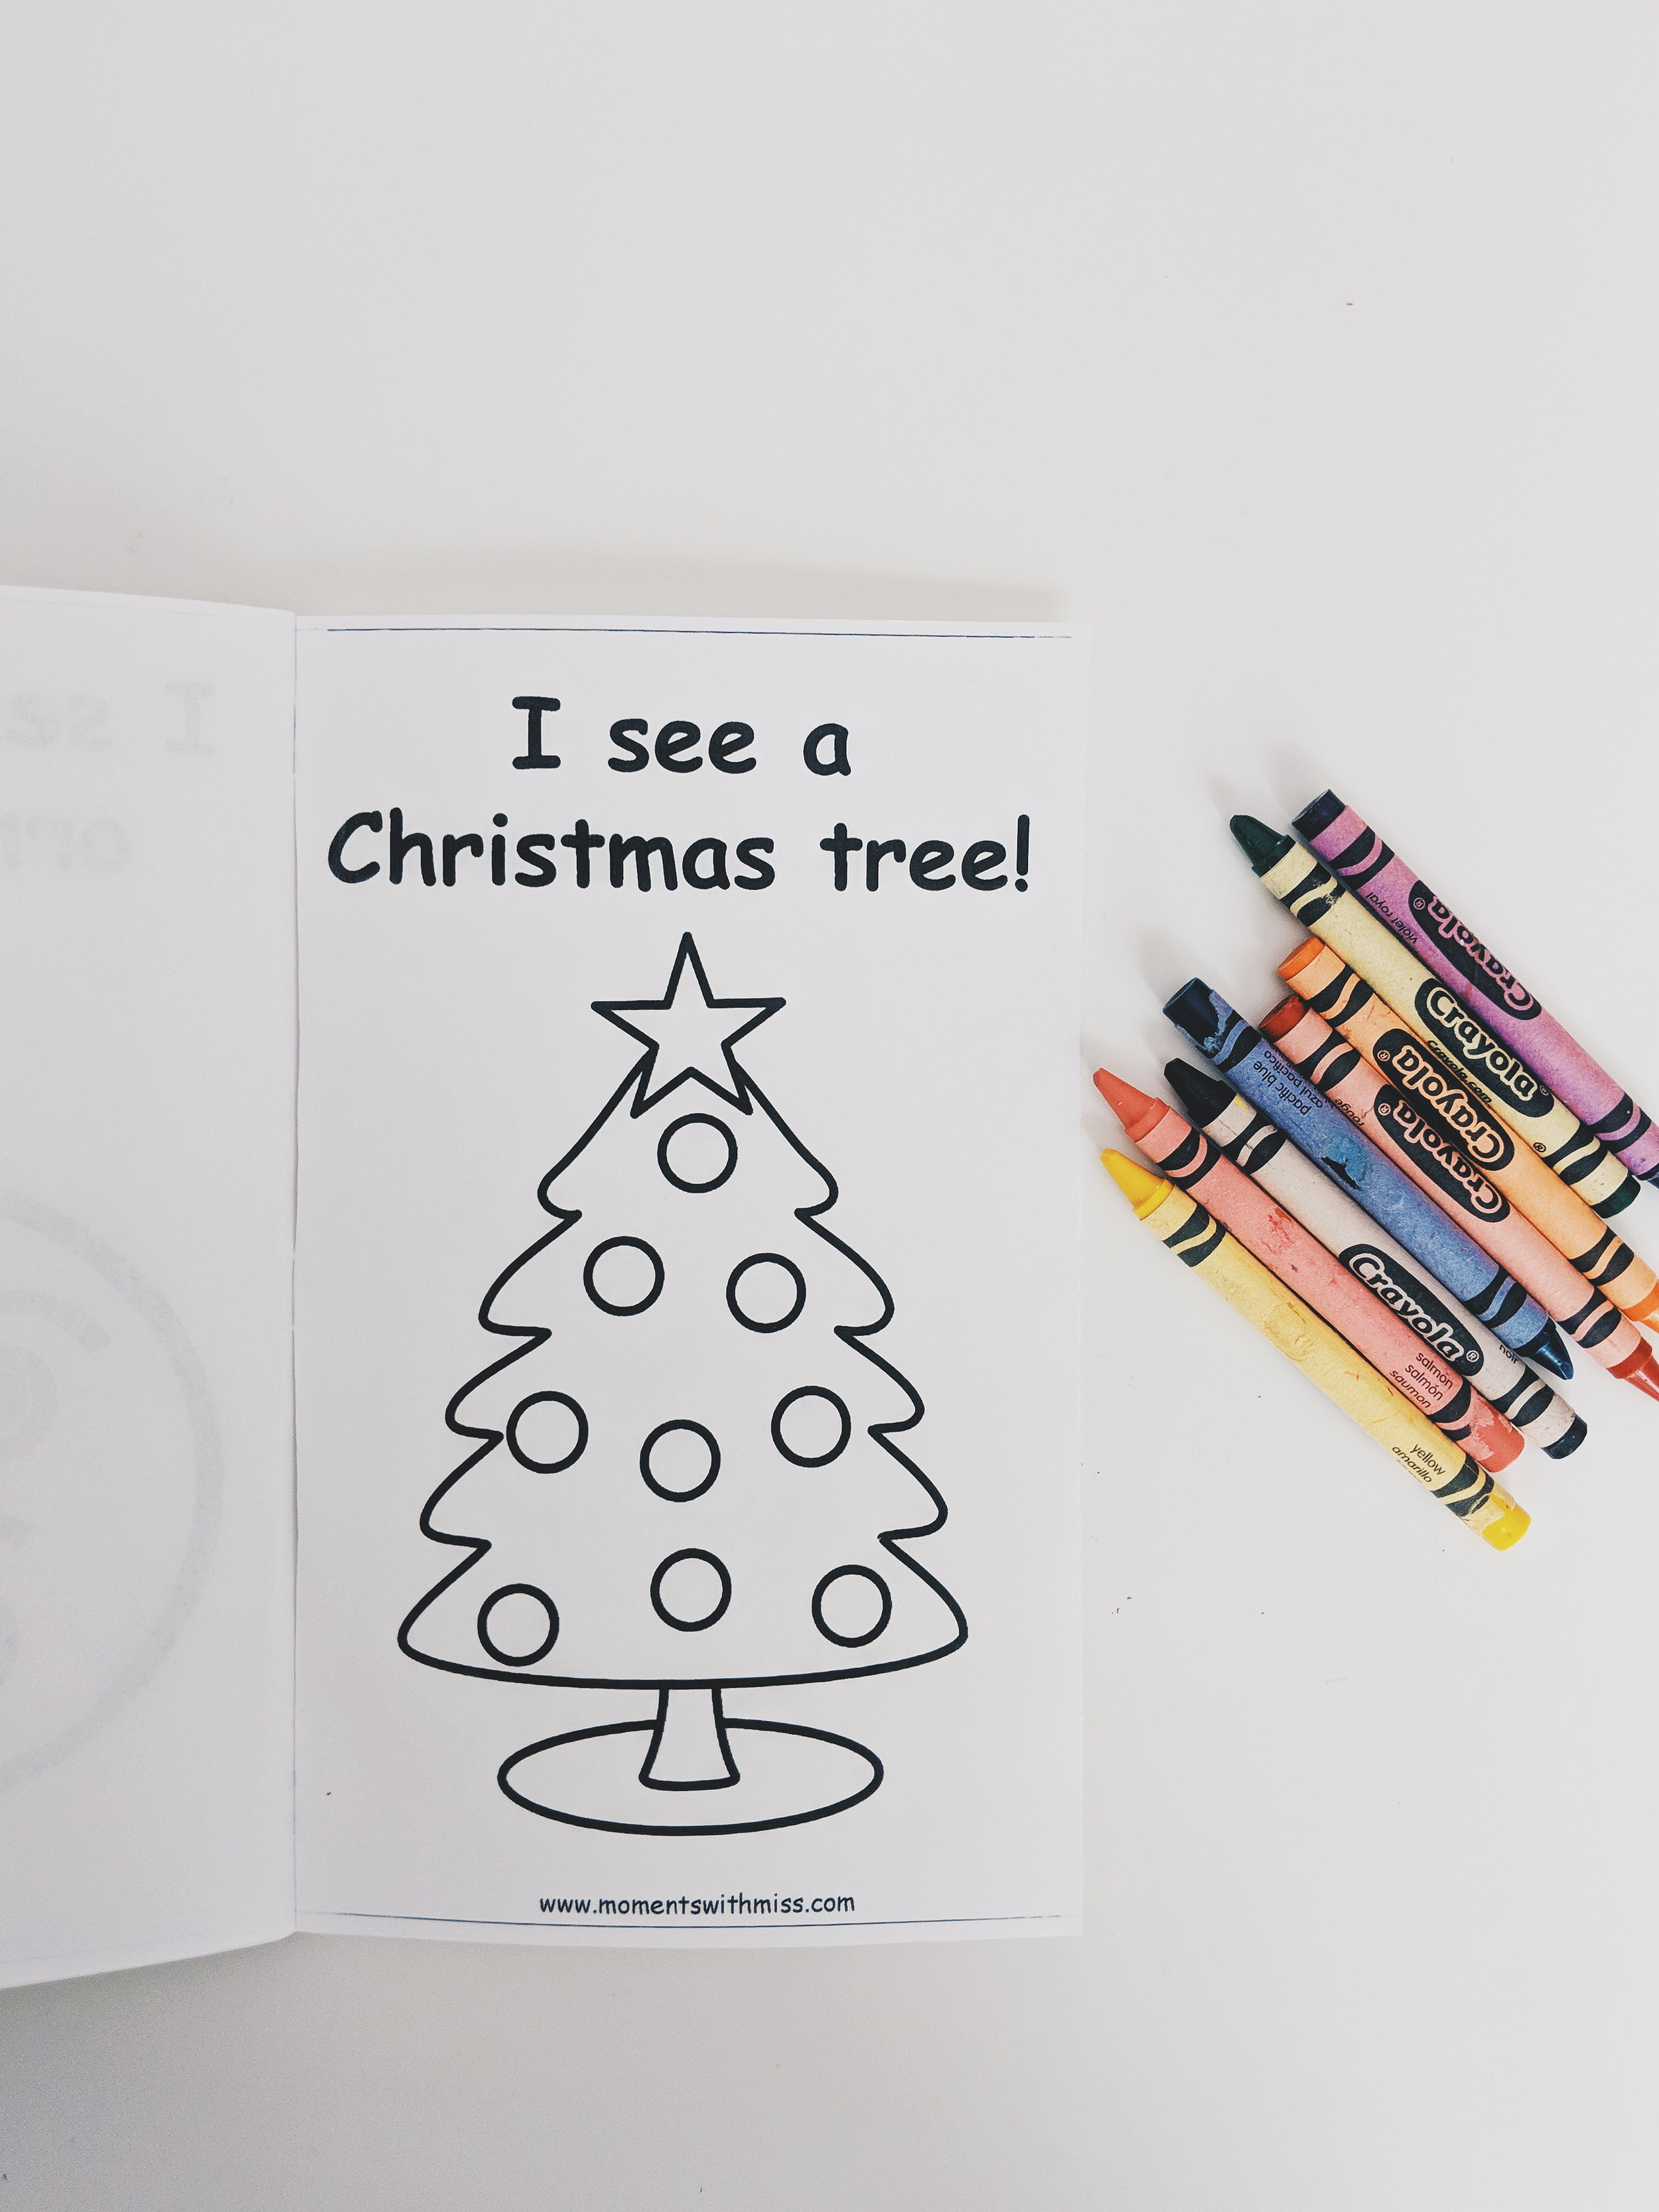 I See Ornaments Christmas Easy Reader Free Printable Mini Book www.momentswithmiss.com.jpg